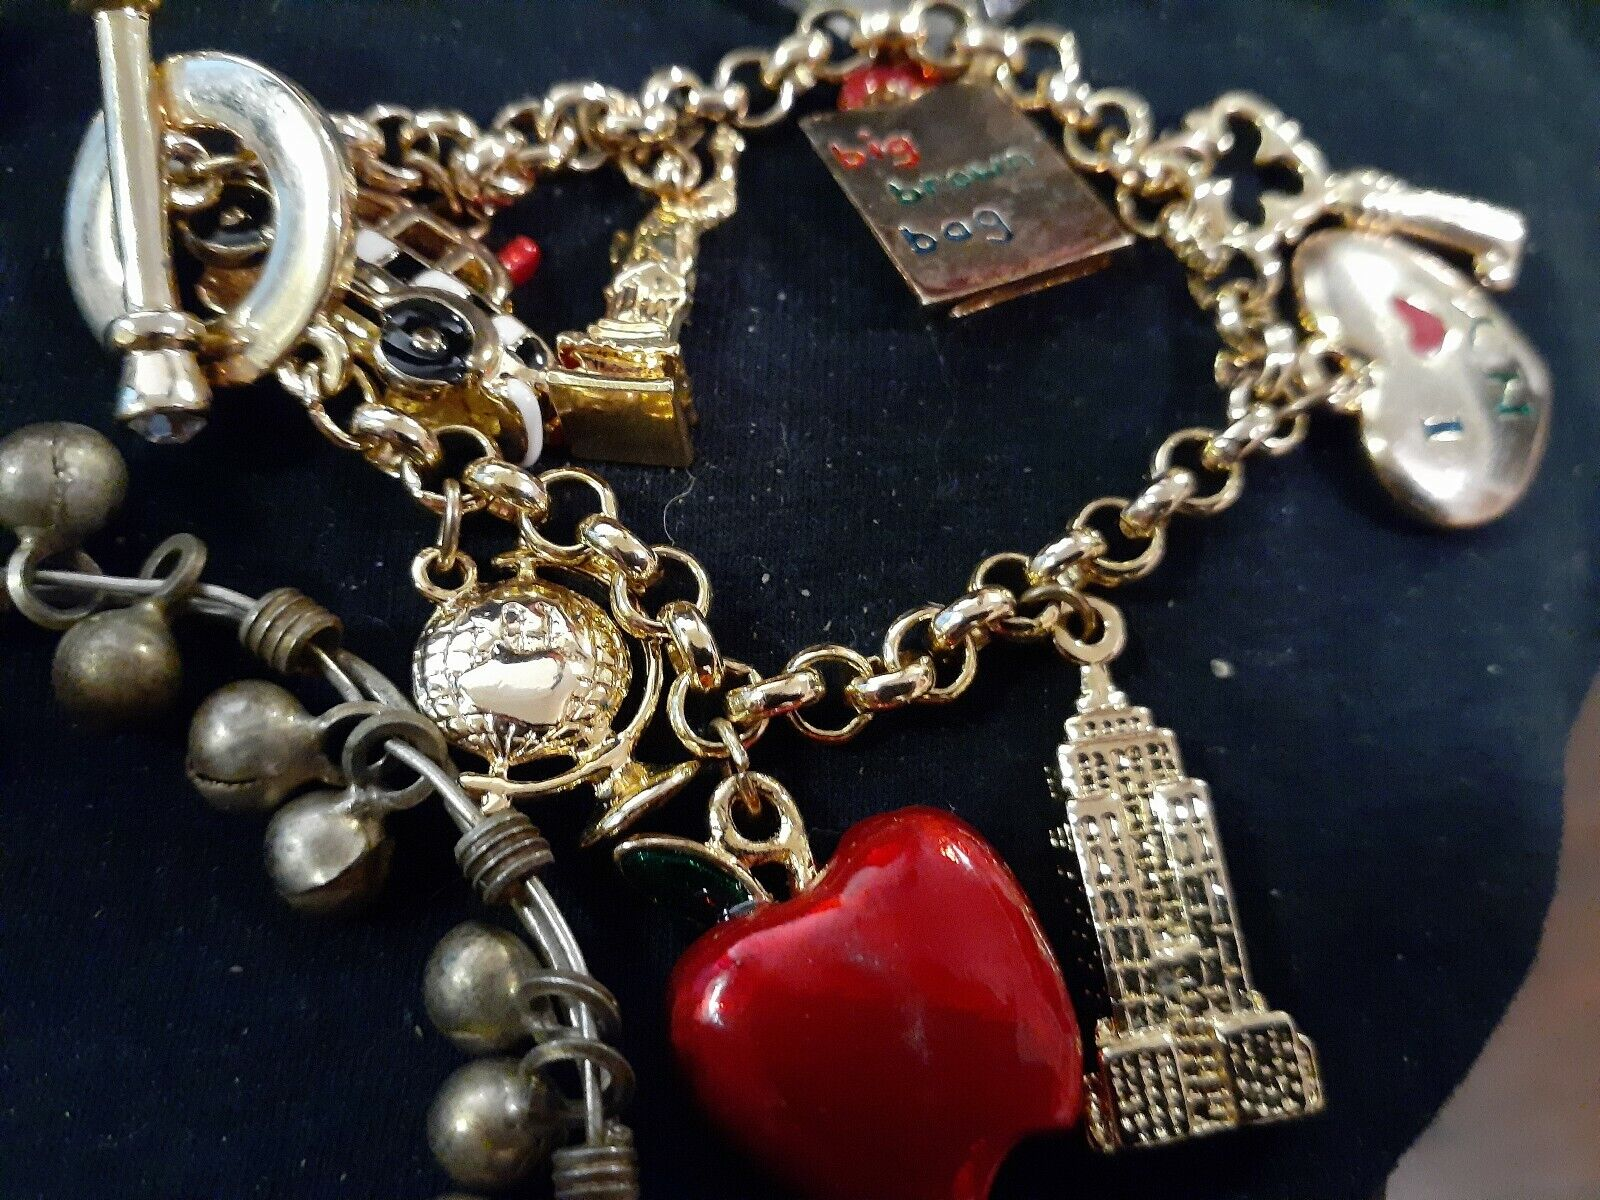 LOT OF VINTAGE COSTUME JEWELRY WATCHES CHARM BRAC… - image 4